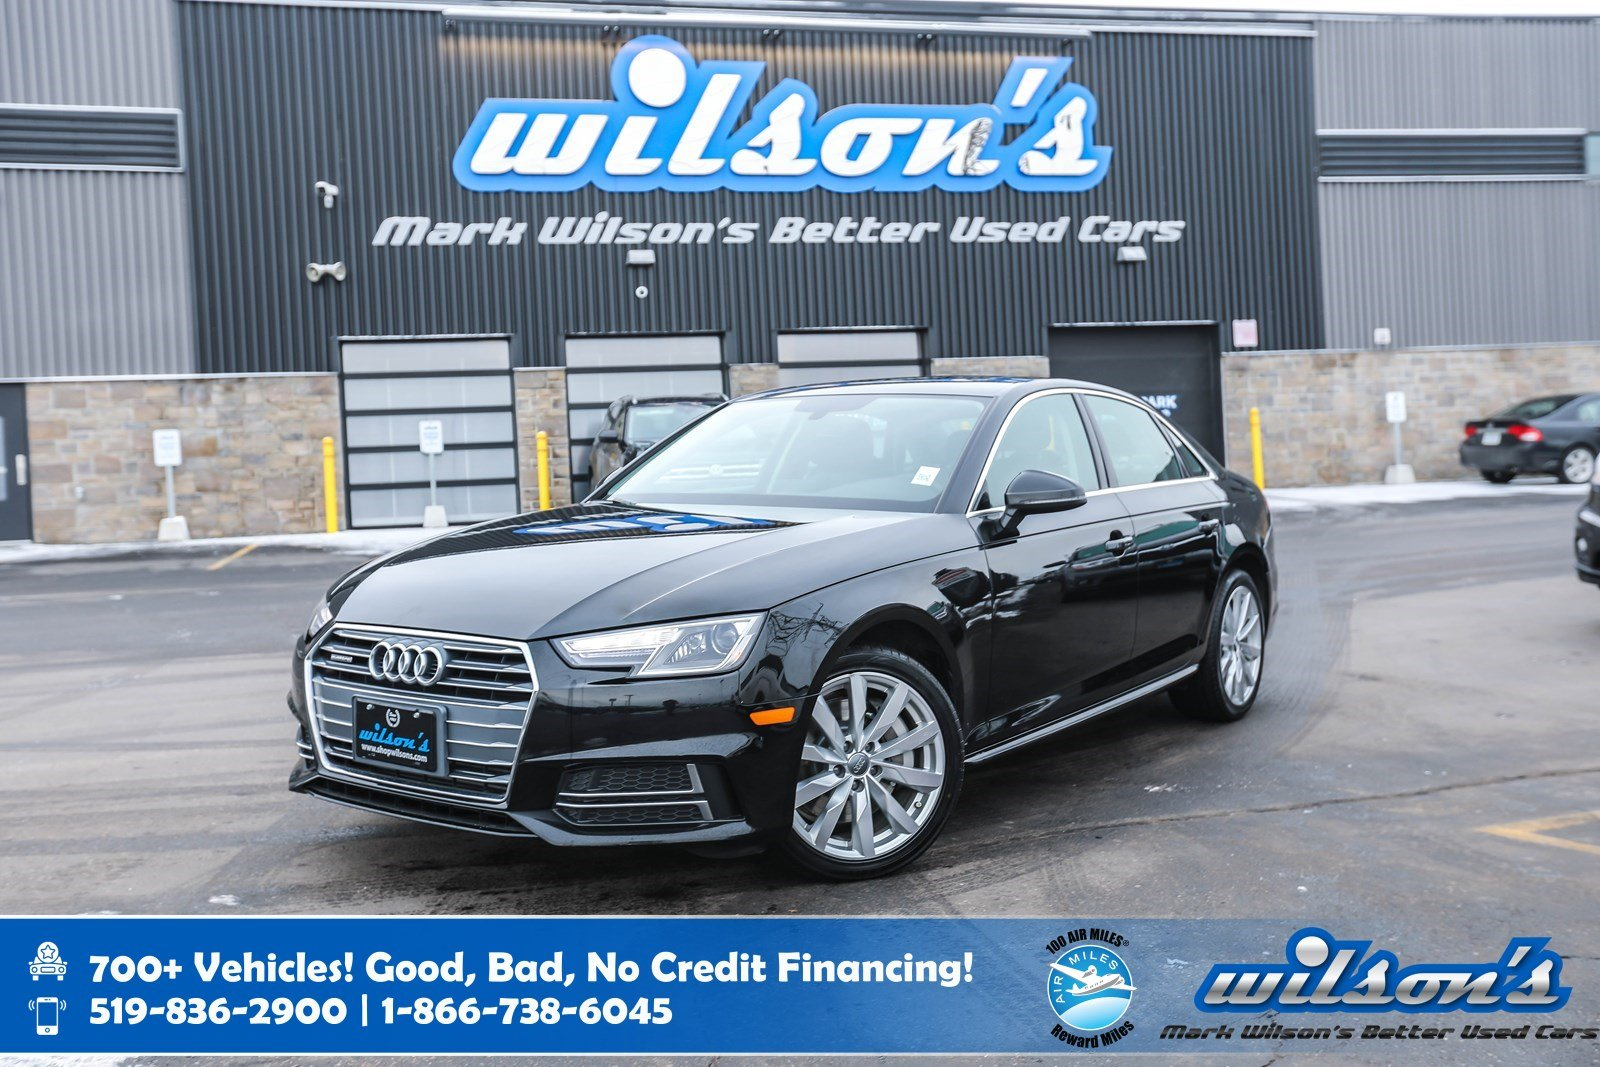 Certified Pre-Owned 2018 Audi A4 Komfort AWD, Leather, Sunroof, Power Seats, Heated Seats, Rear Camera, Proximity Key and more!